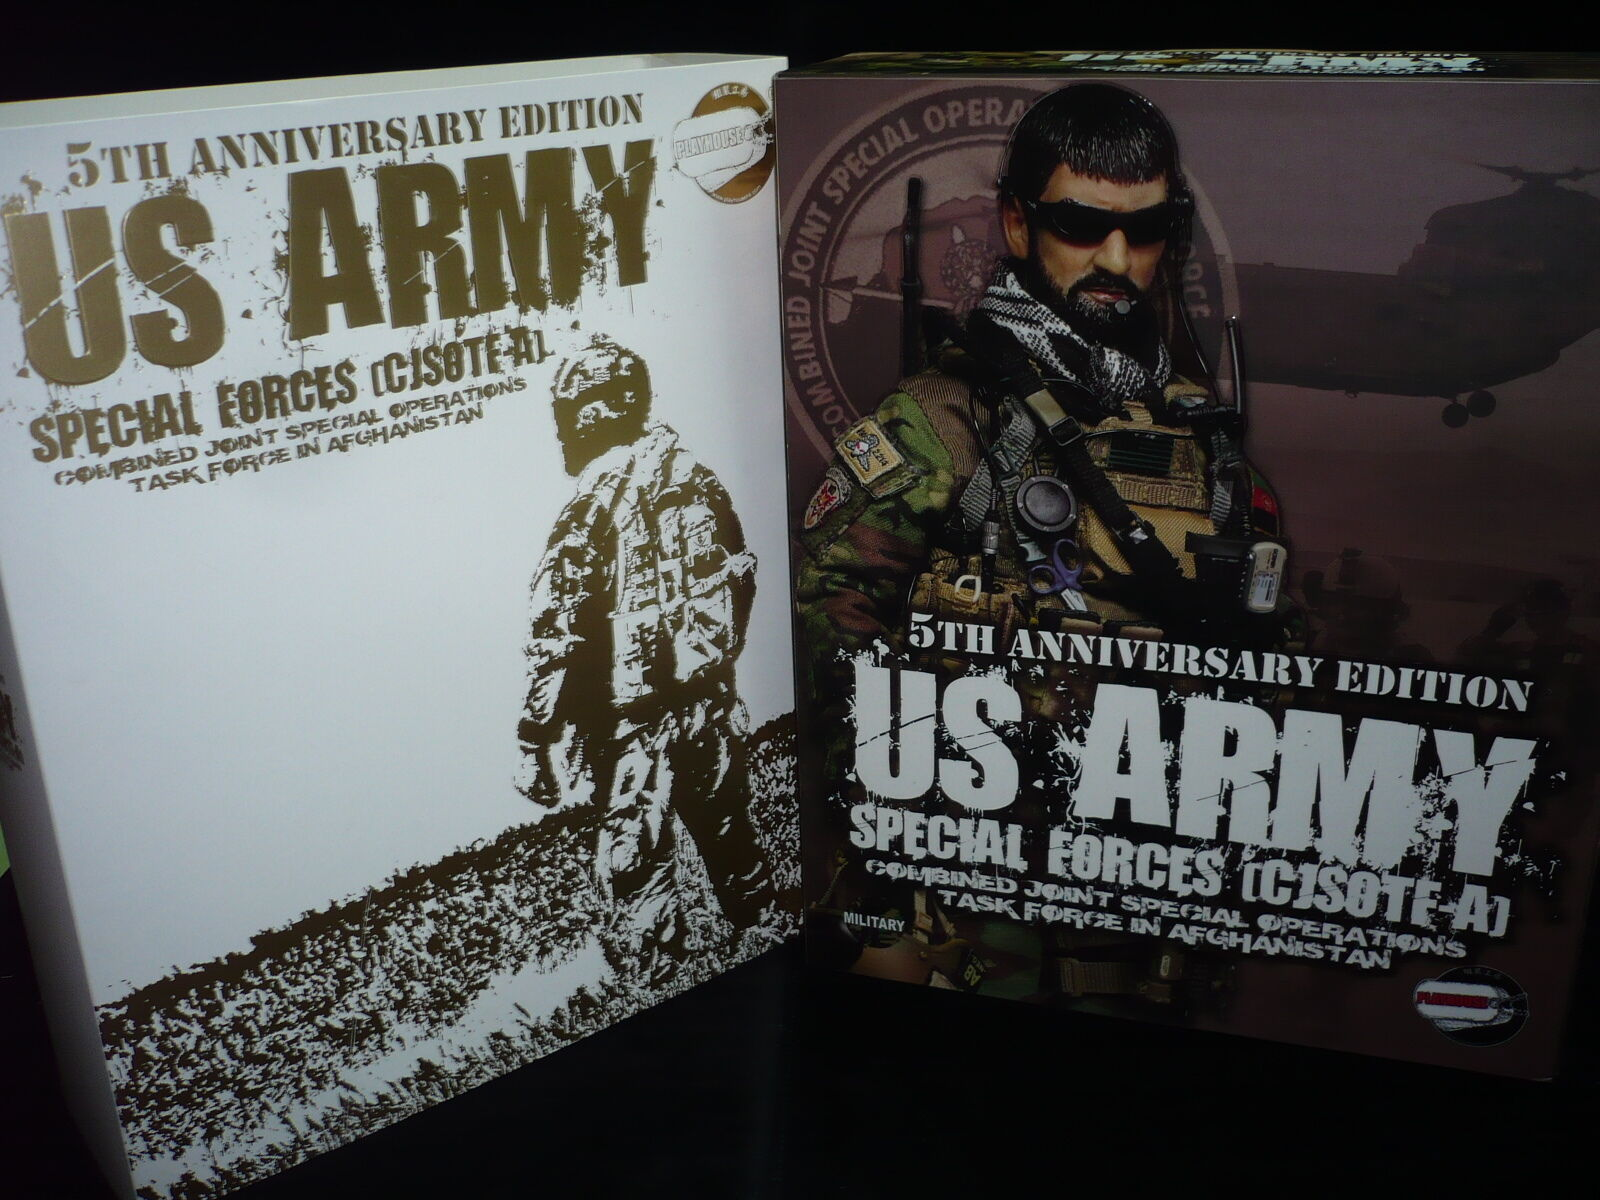 1 6 PLAYHOUSE 5TH ANNIVERSARY US ARMY specialeee  FORCES (verde BERET) AFGHANISTAN  negozio online